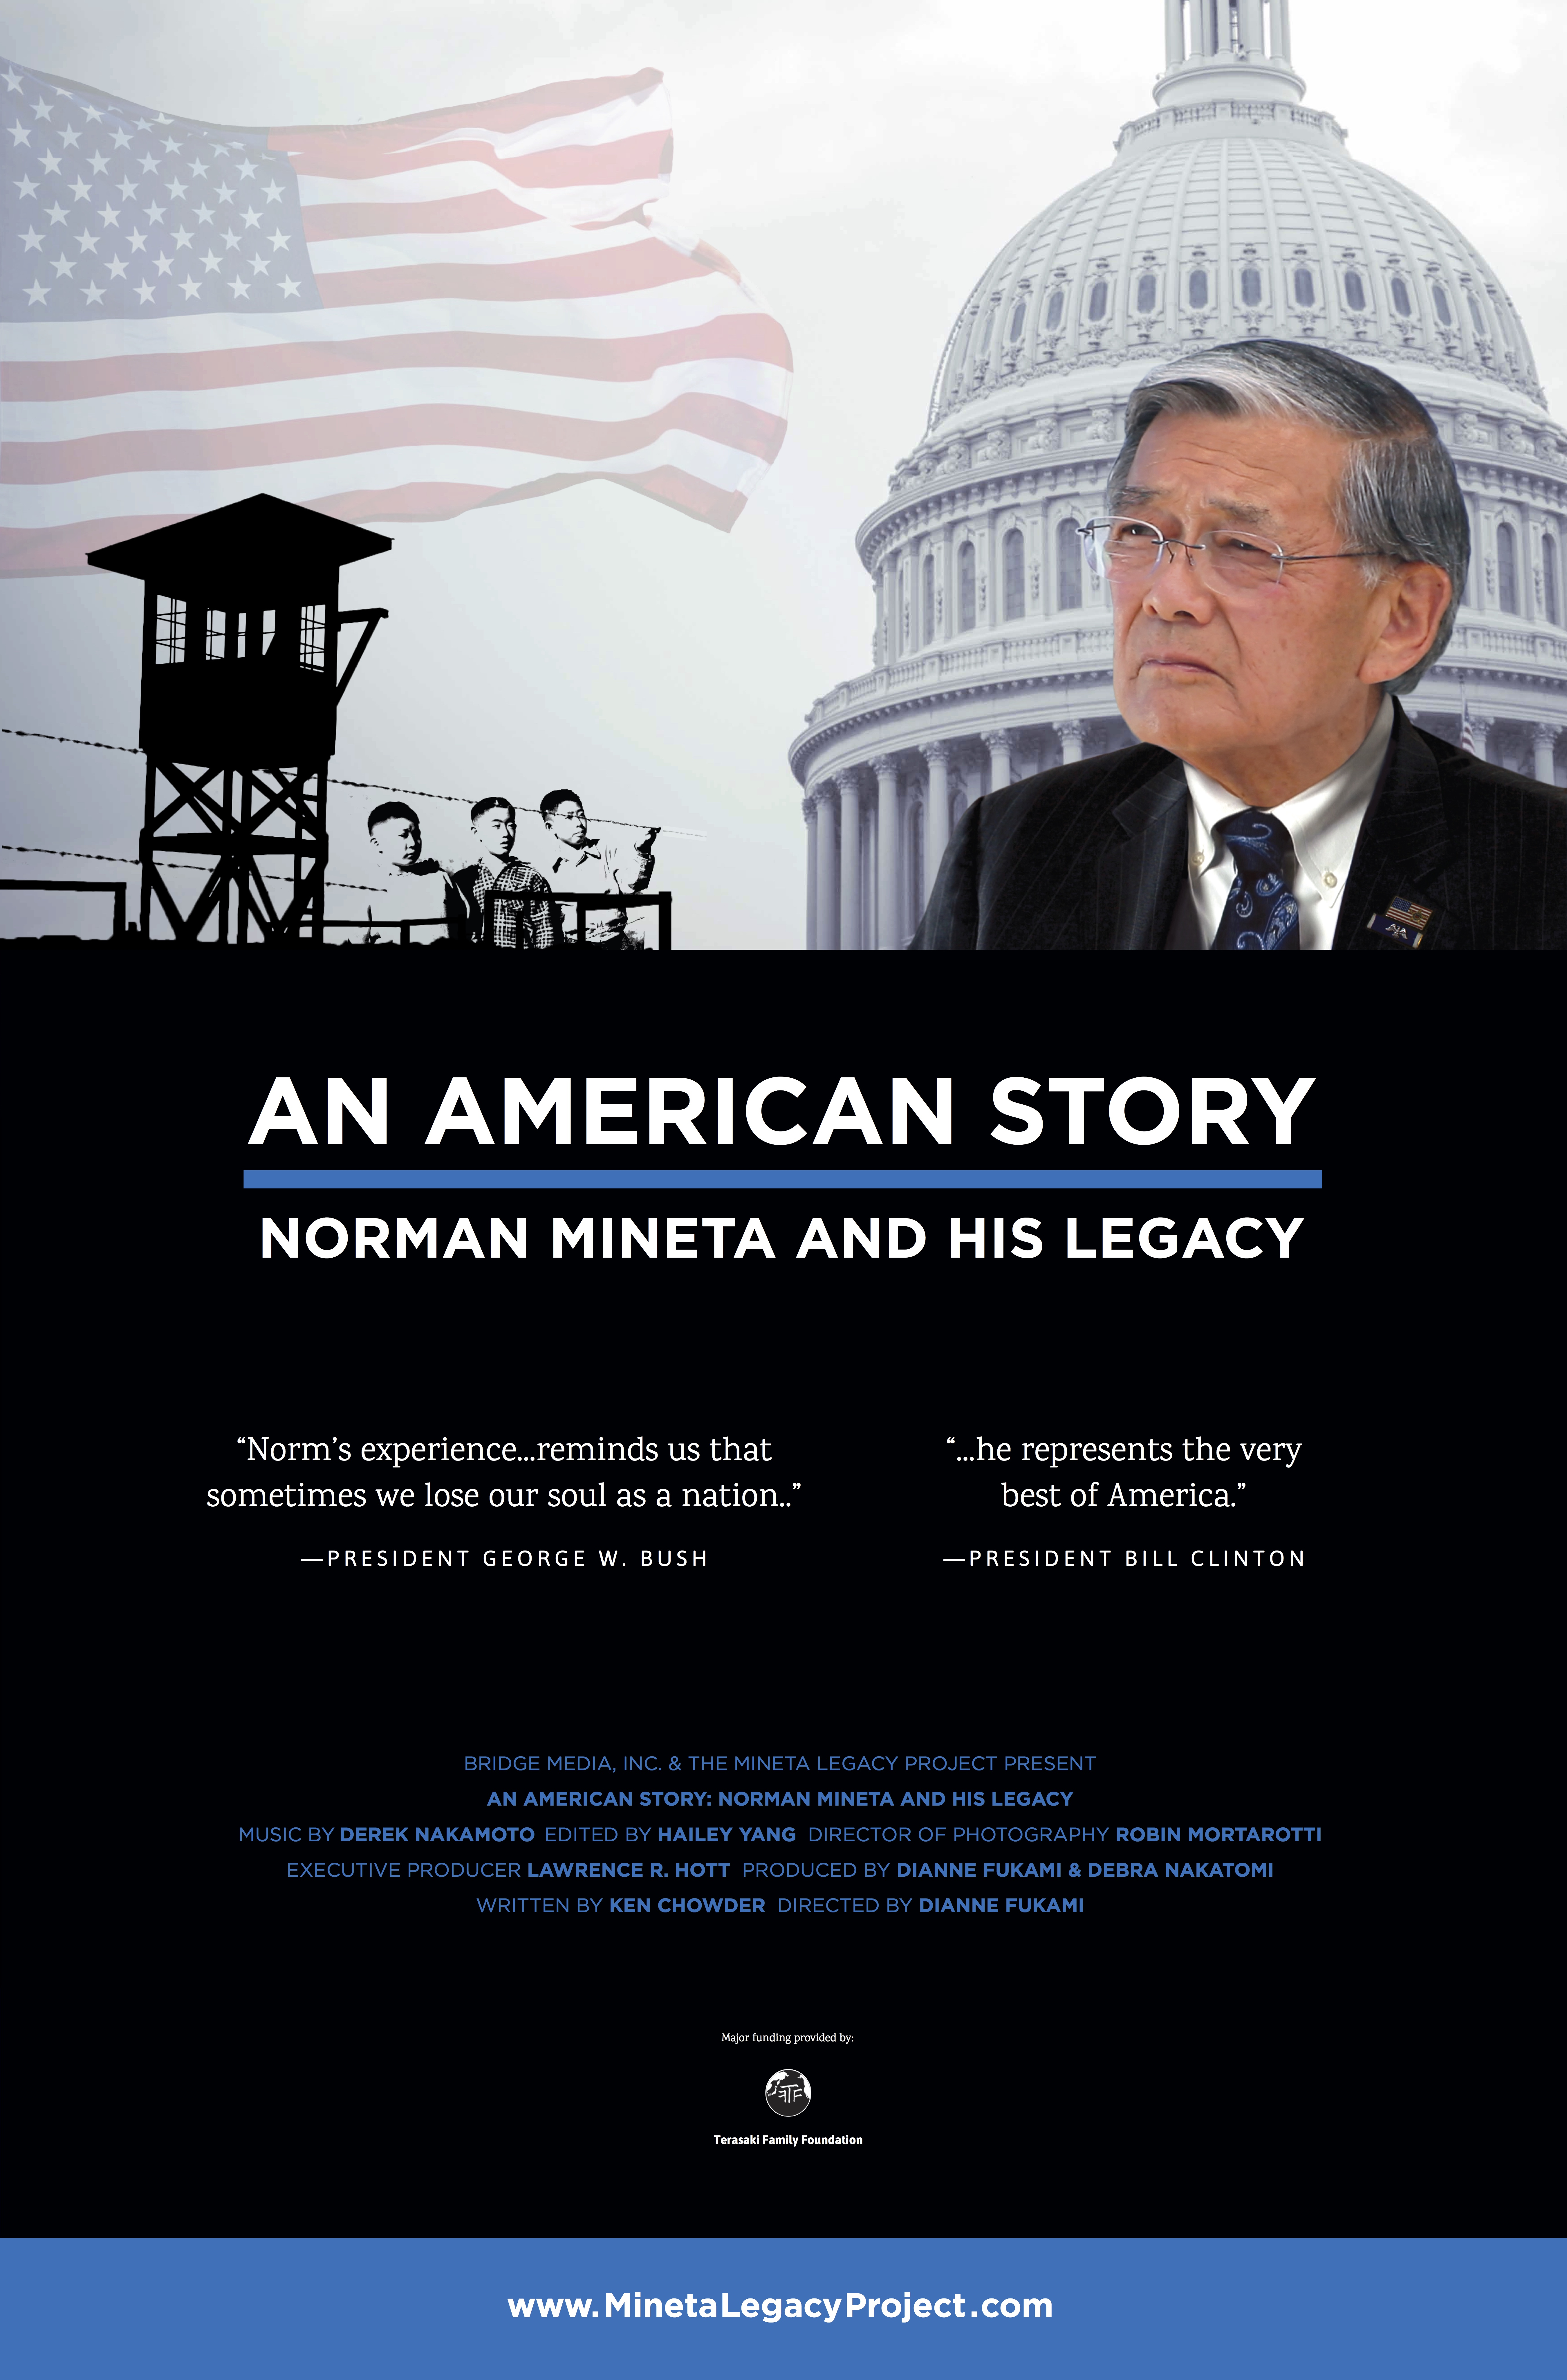 An American Story: Norman Mineta and